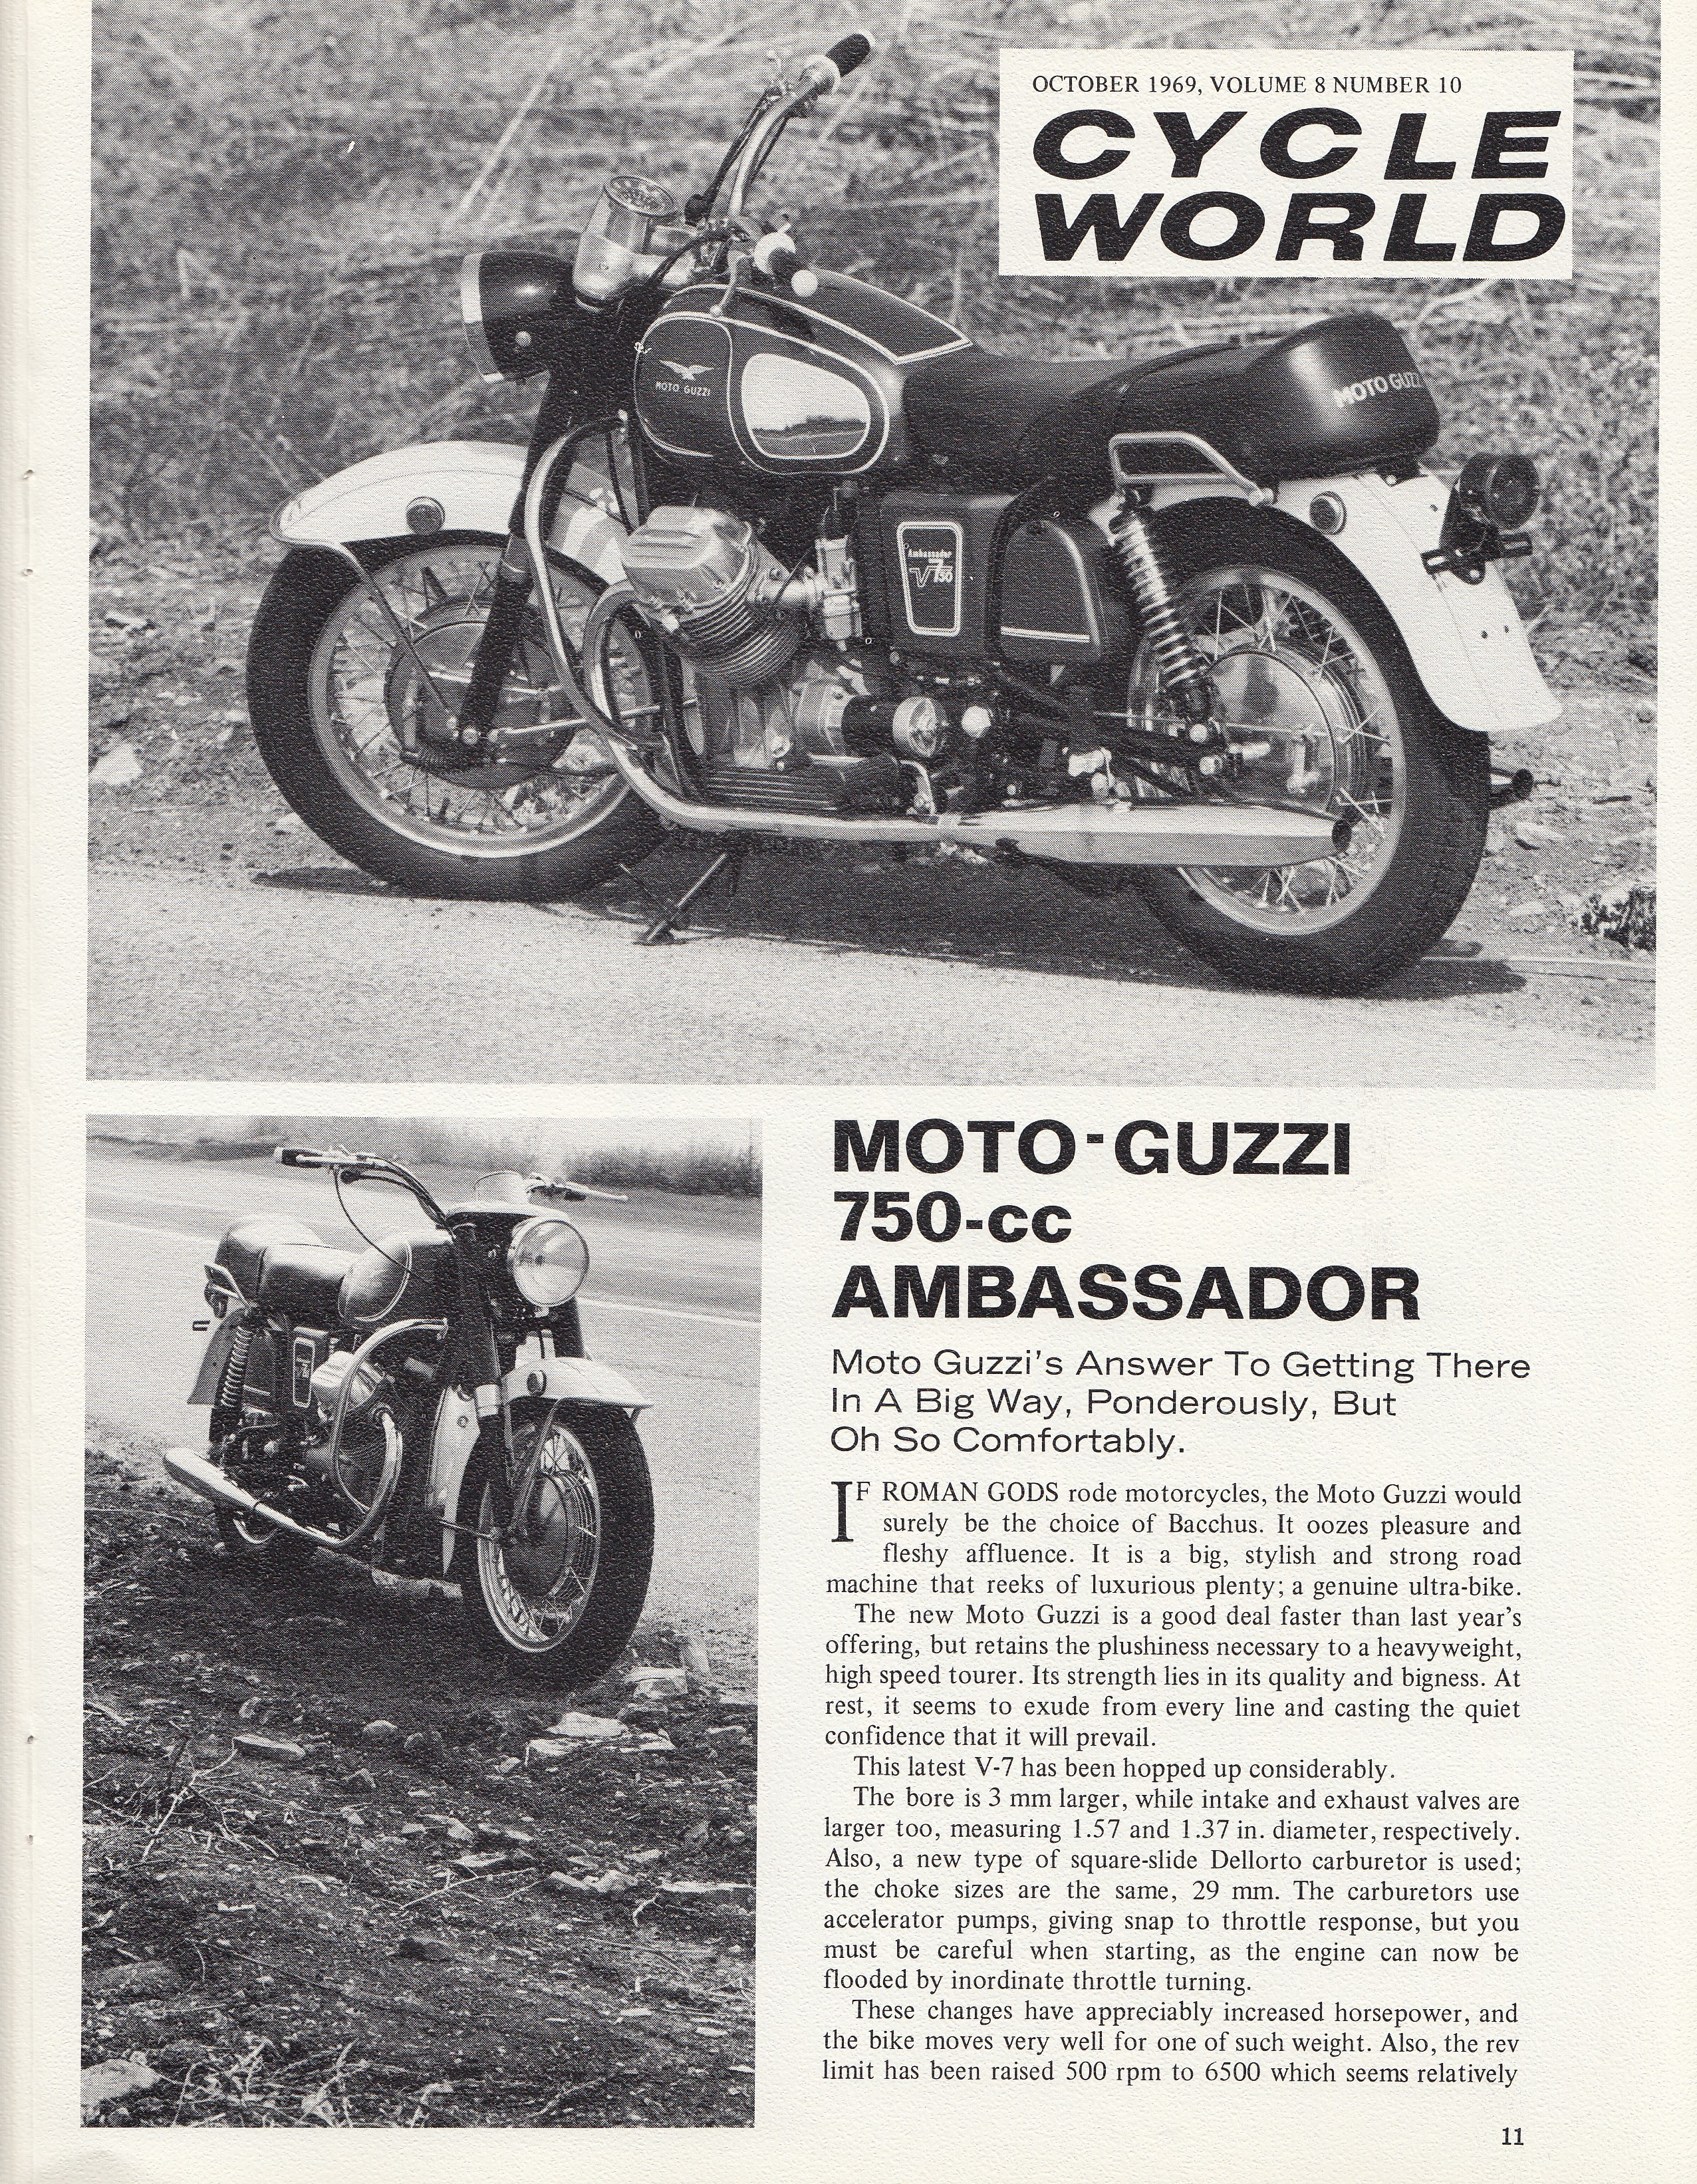 Moto Guzzi Ambassador factory brochure of magazine reviews, Page 11 of 16.